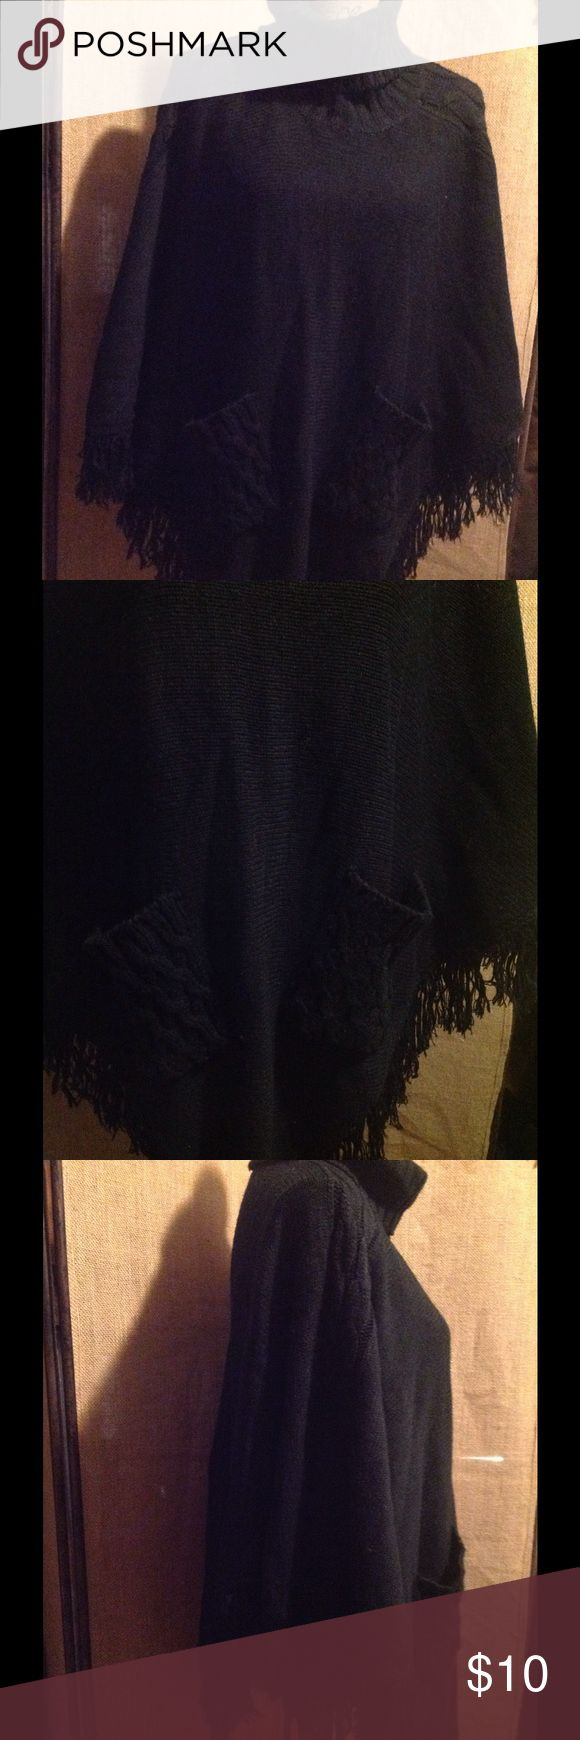 Jennifer Lauren shaw sweater Jennifer Lauren shaw sweater size XL. It is black. Fringed at bottom. Good condition Sweaters Shrugs & Ponchos